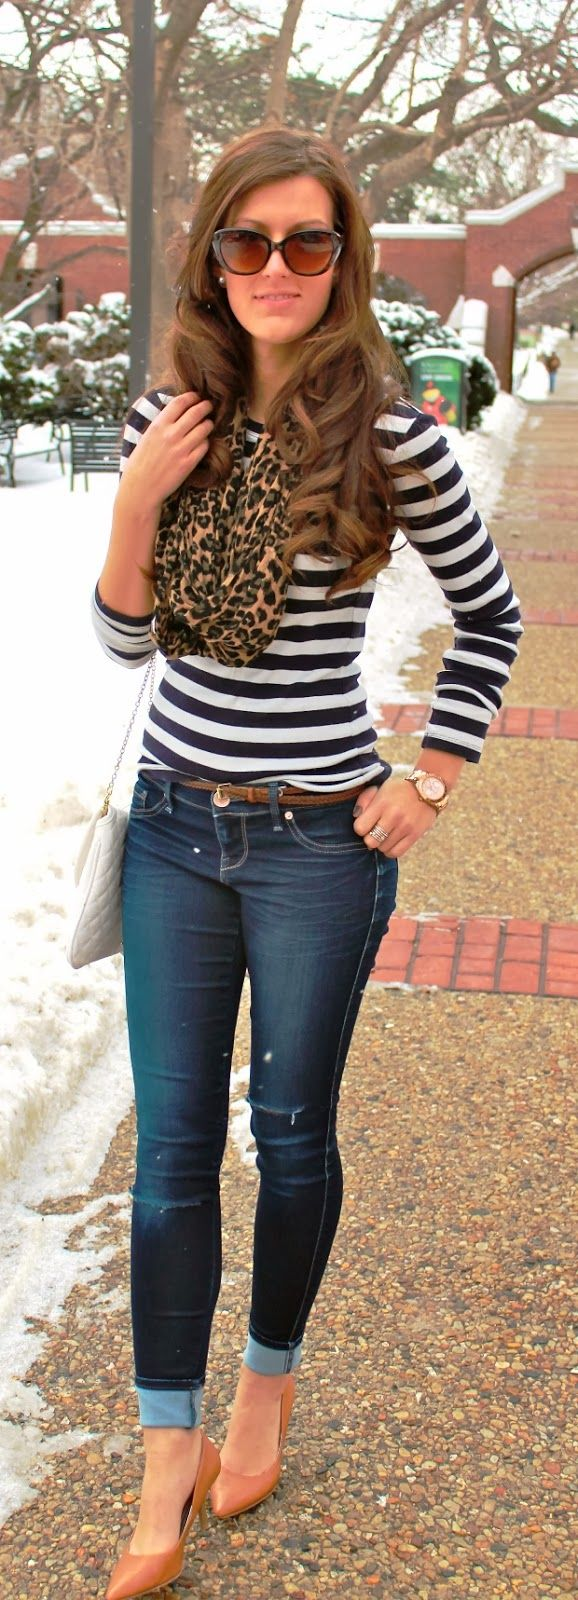 Winter style with stripes and leopard scarf. Id probably wear some nude flats or sandals instead, not a big fan of heels!